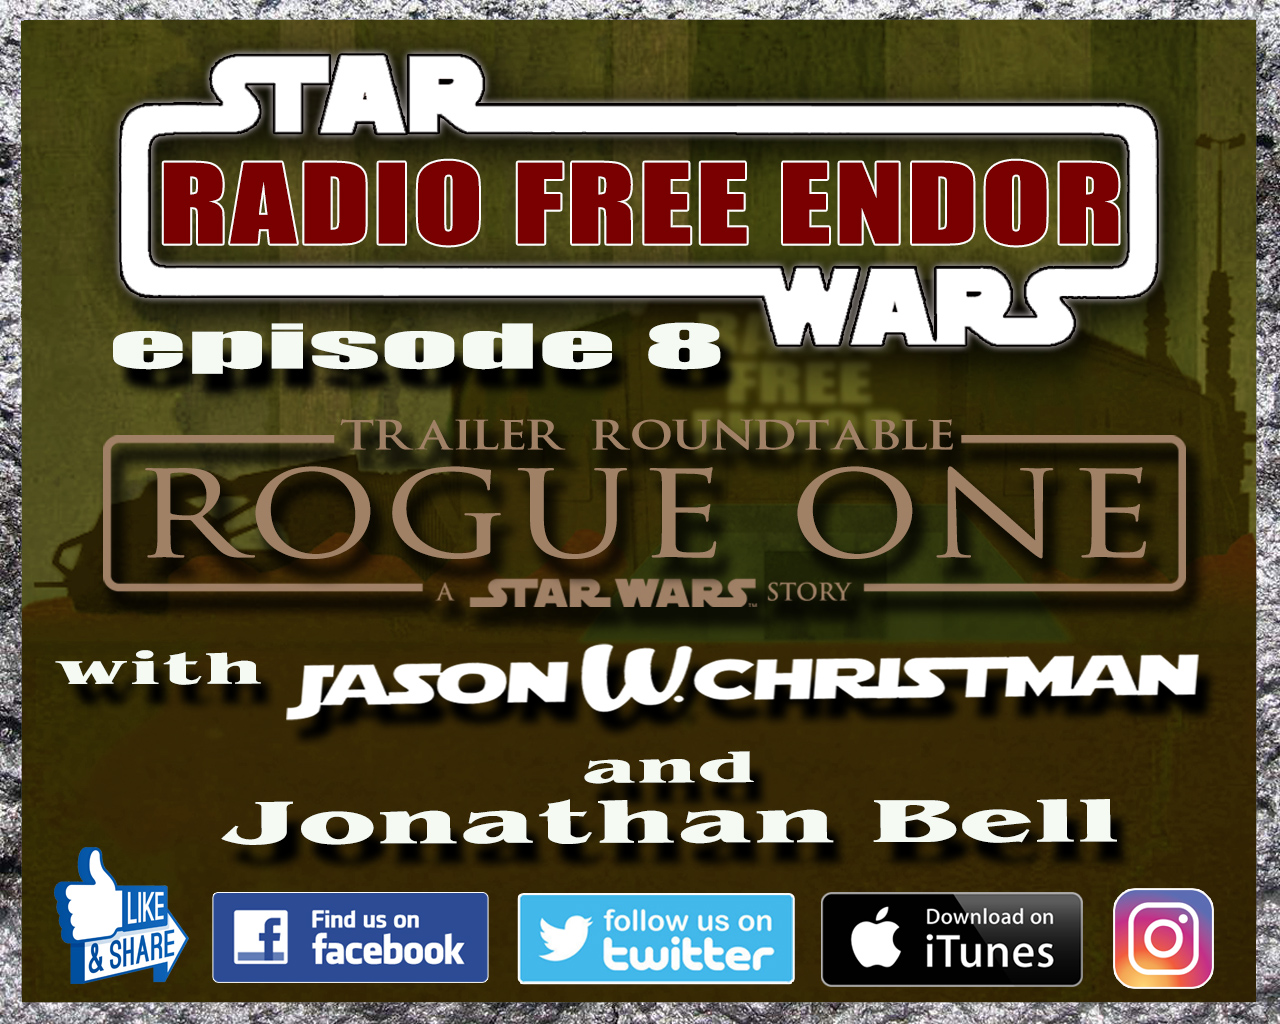 Rogue One Trailer Roundtable - s2e8 Radio Free Endor